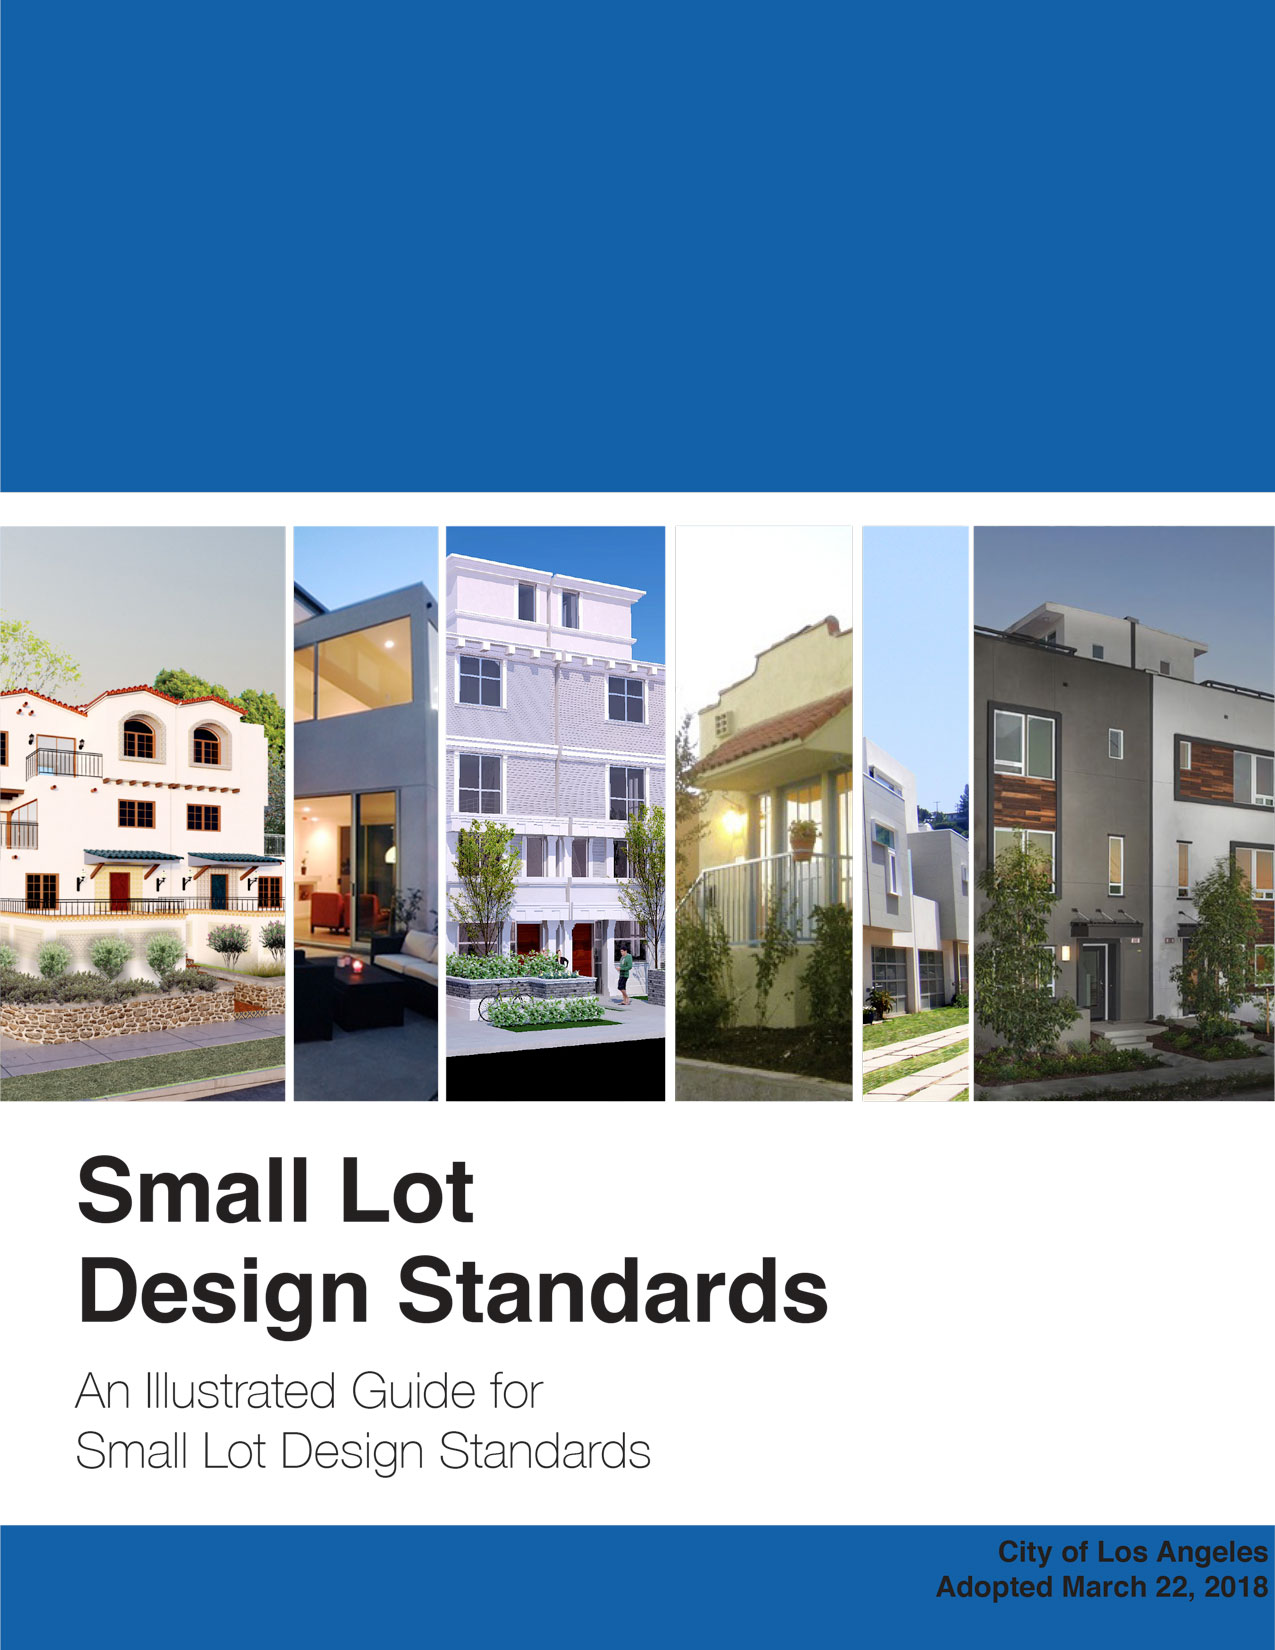 Small Lot Design Standards